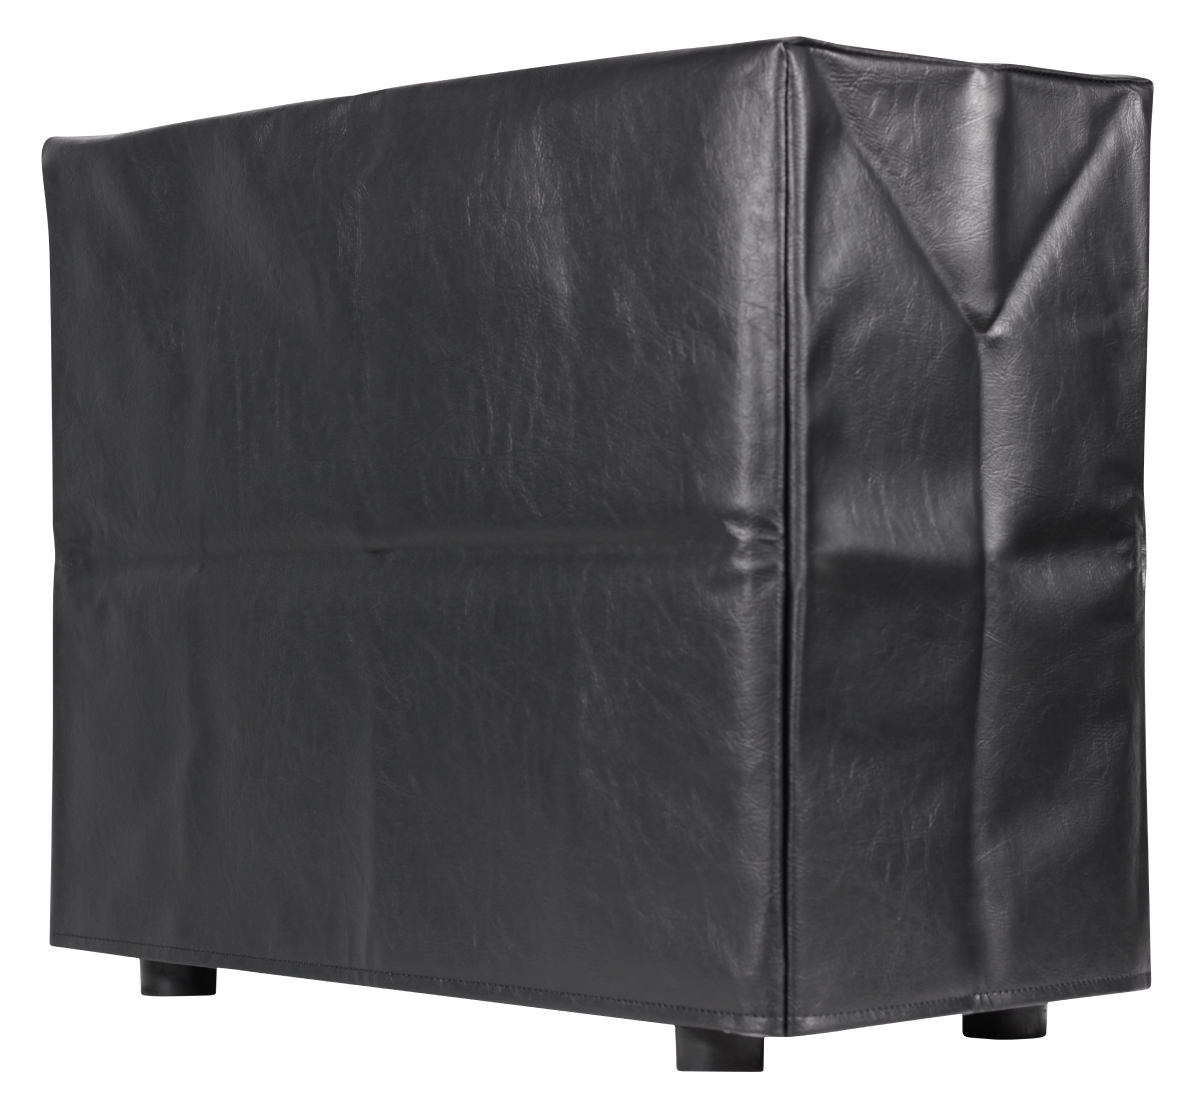 MOJO LITE GUITAR 1x10 or 1x12 SPEAKER EXTENSION CABINET COVER